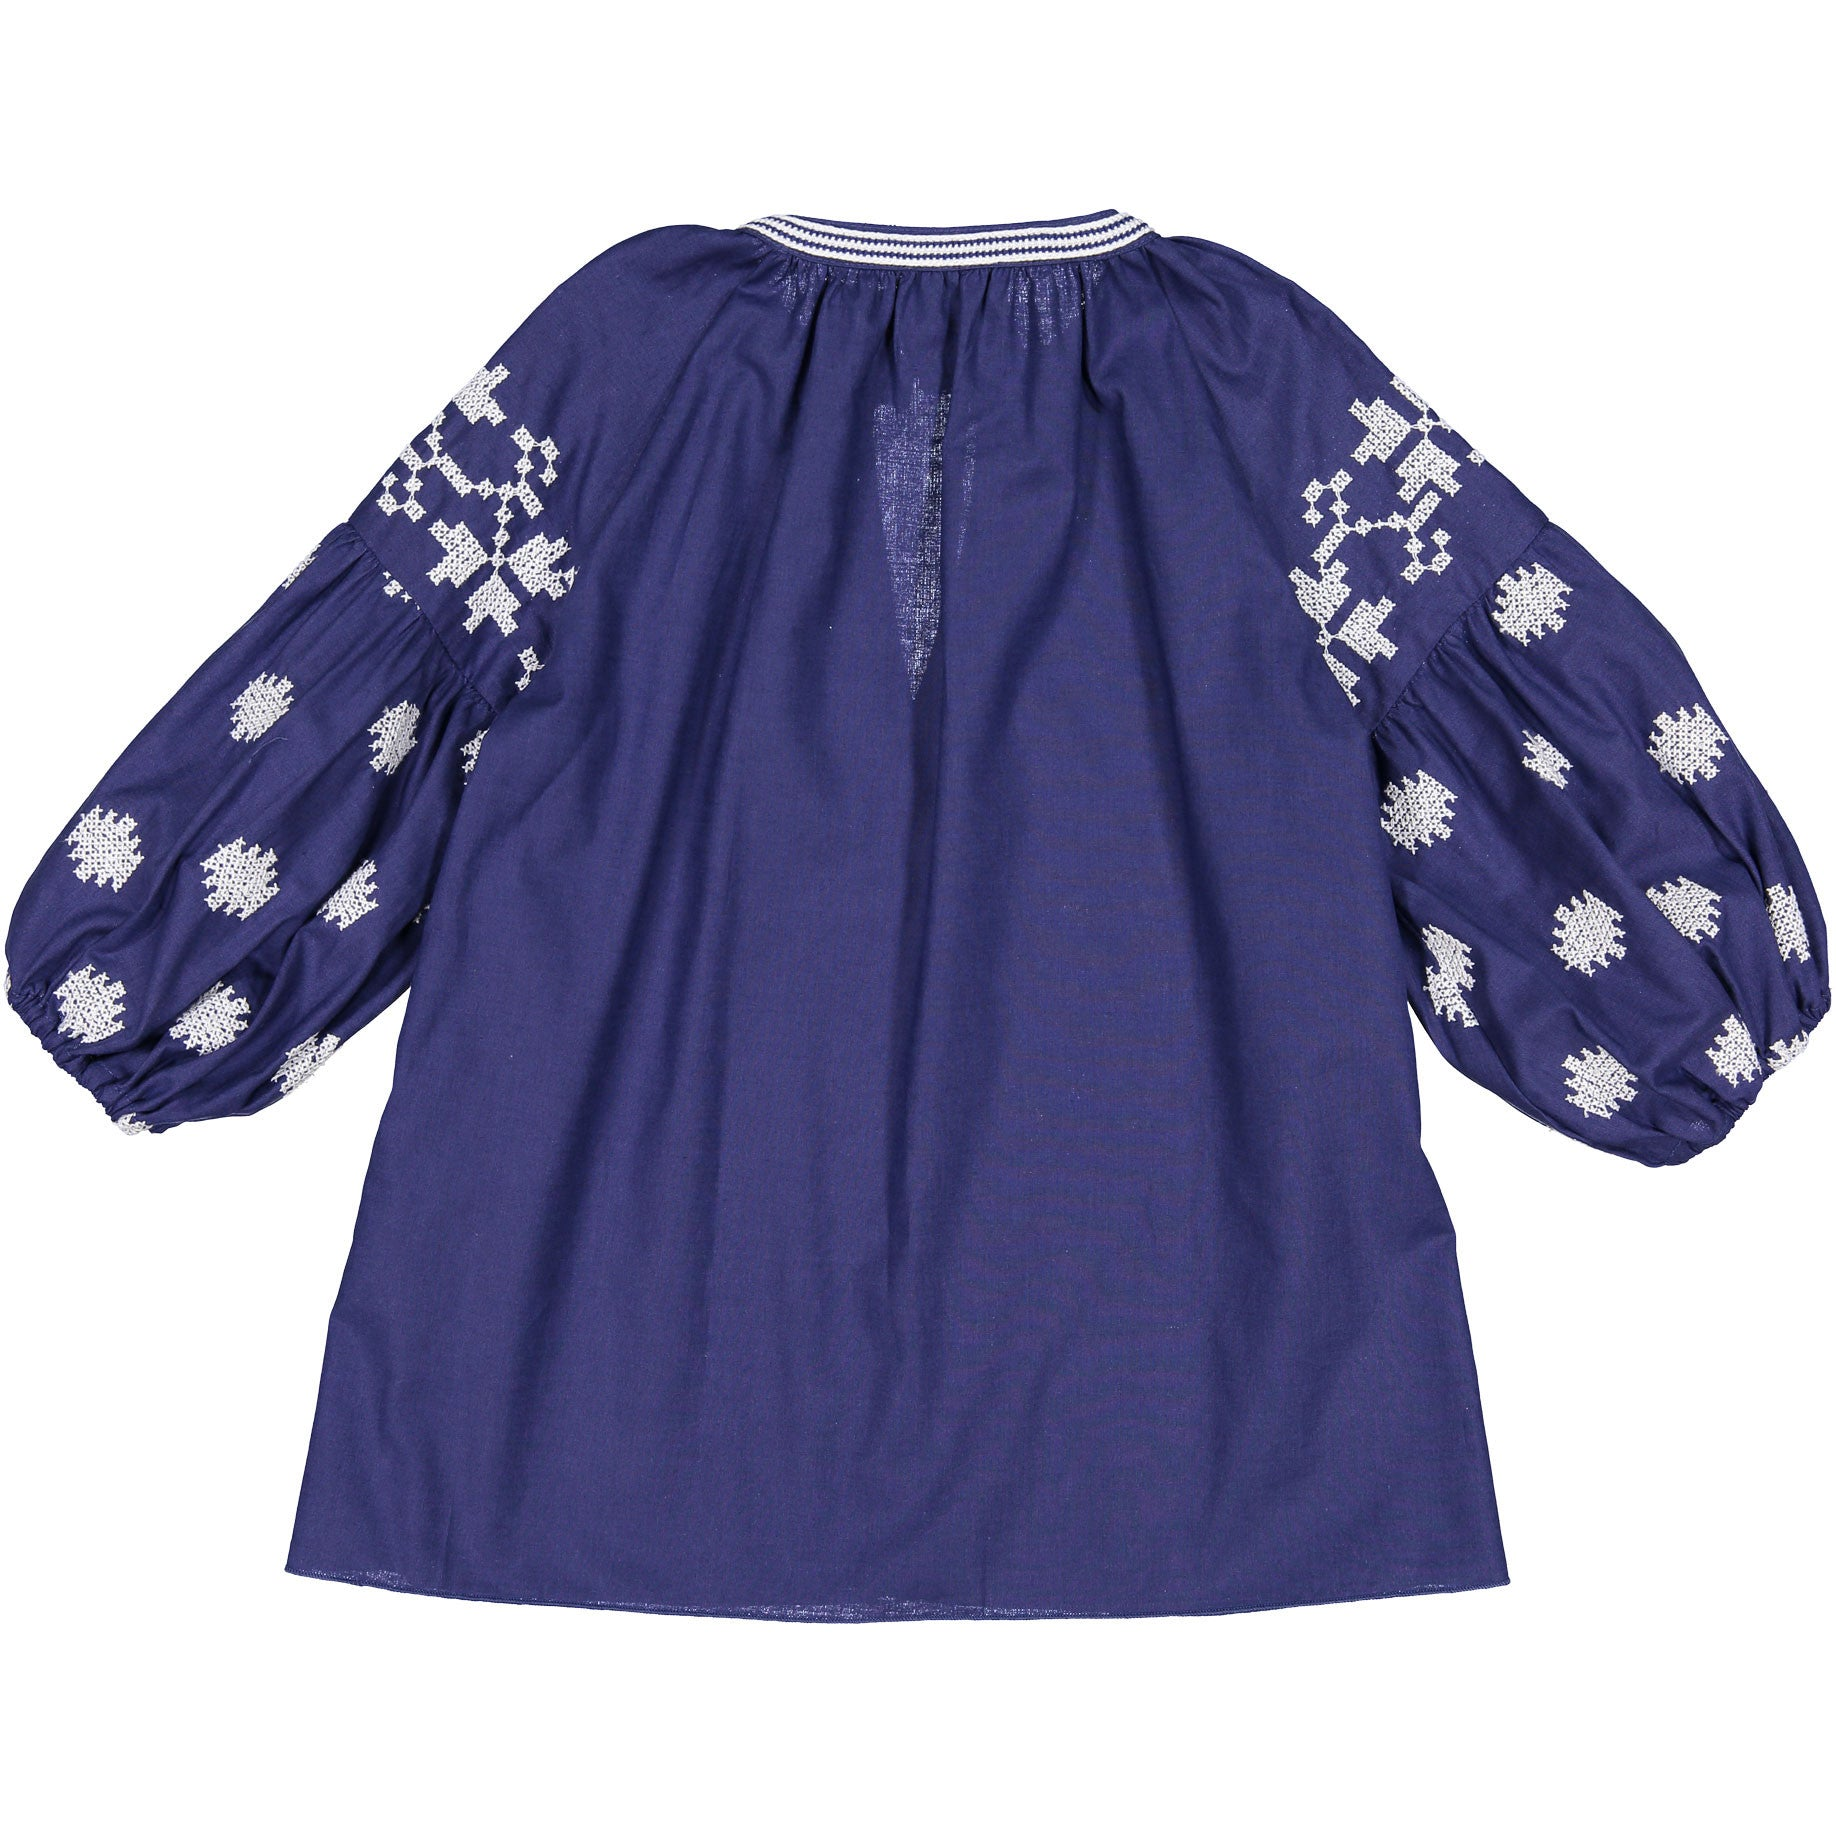 Doudou Blue Embroidered Blouse - Ladida